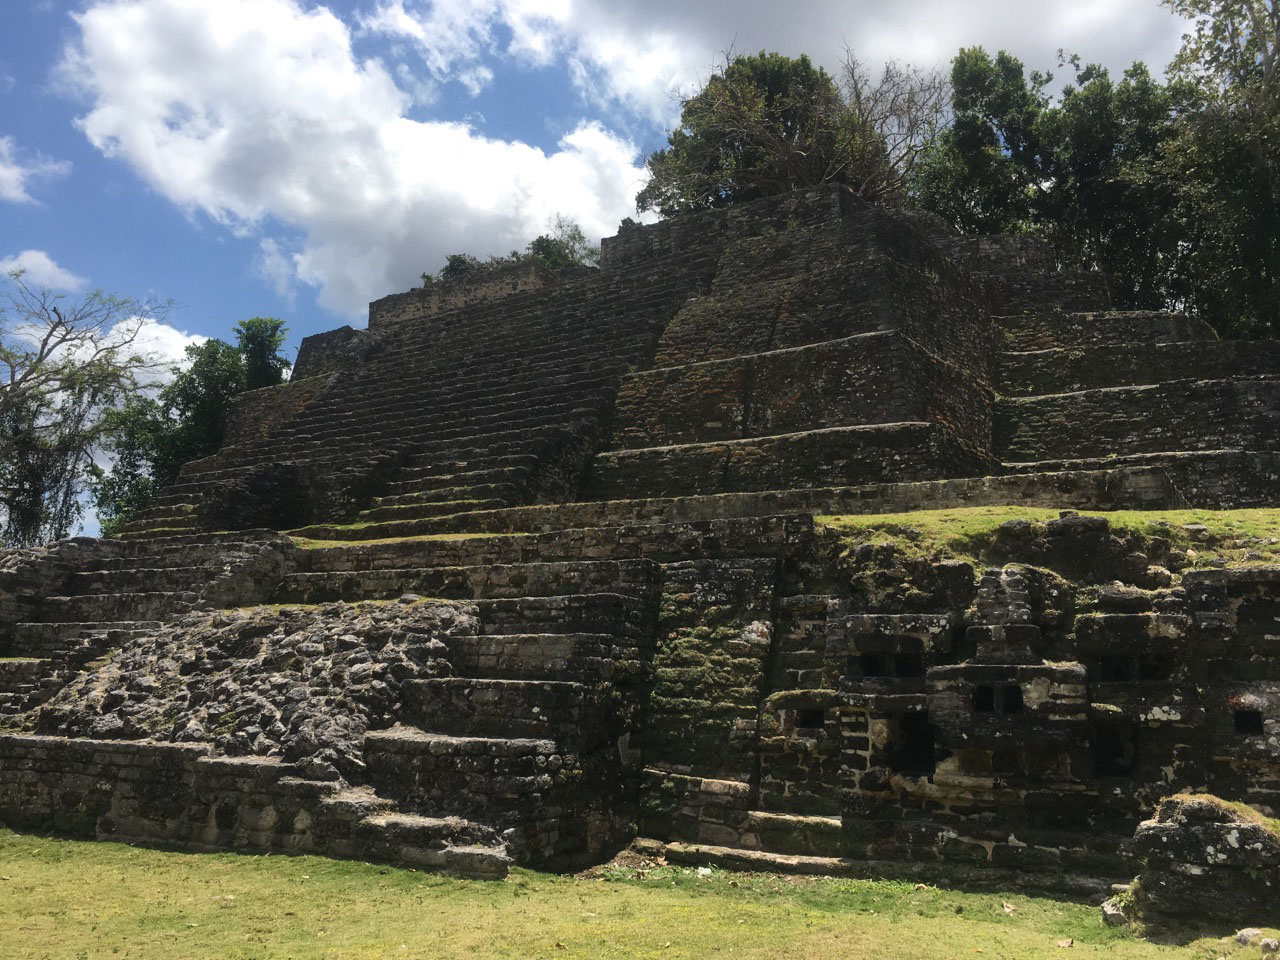 Highlights of Jepson's trip to Belize